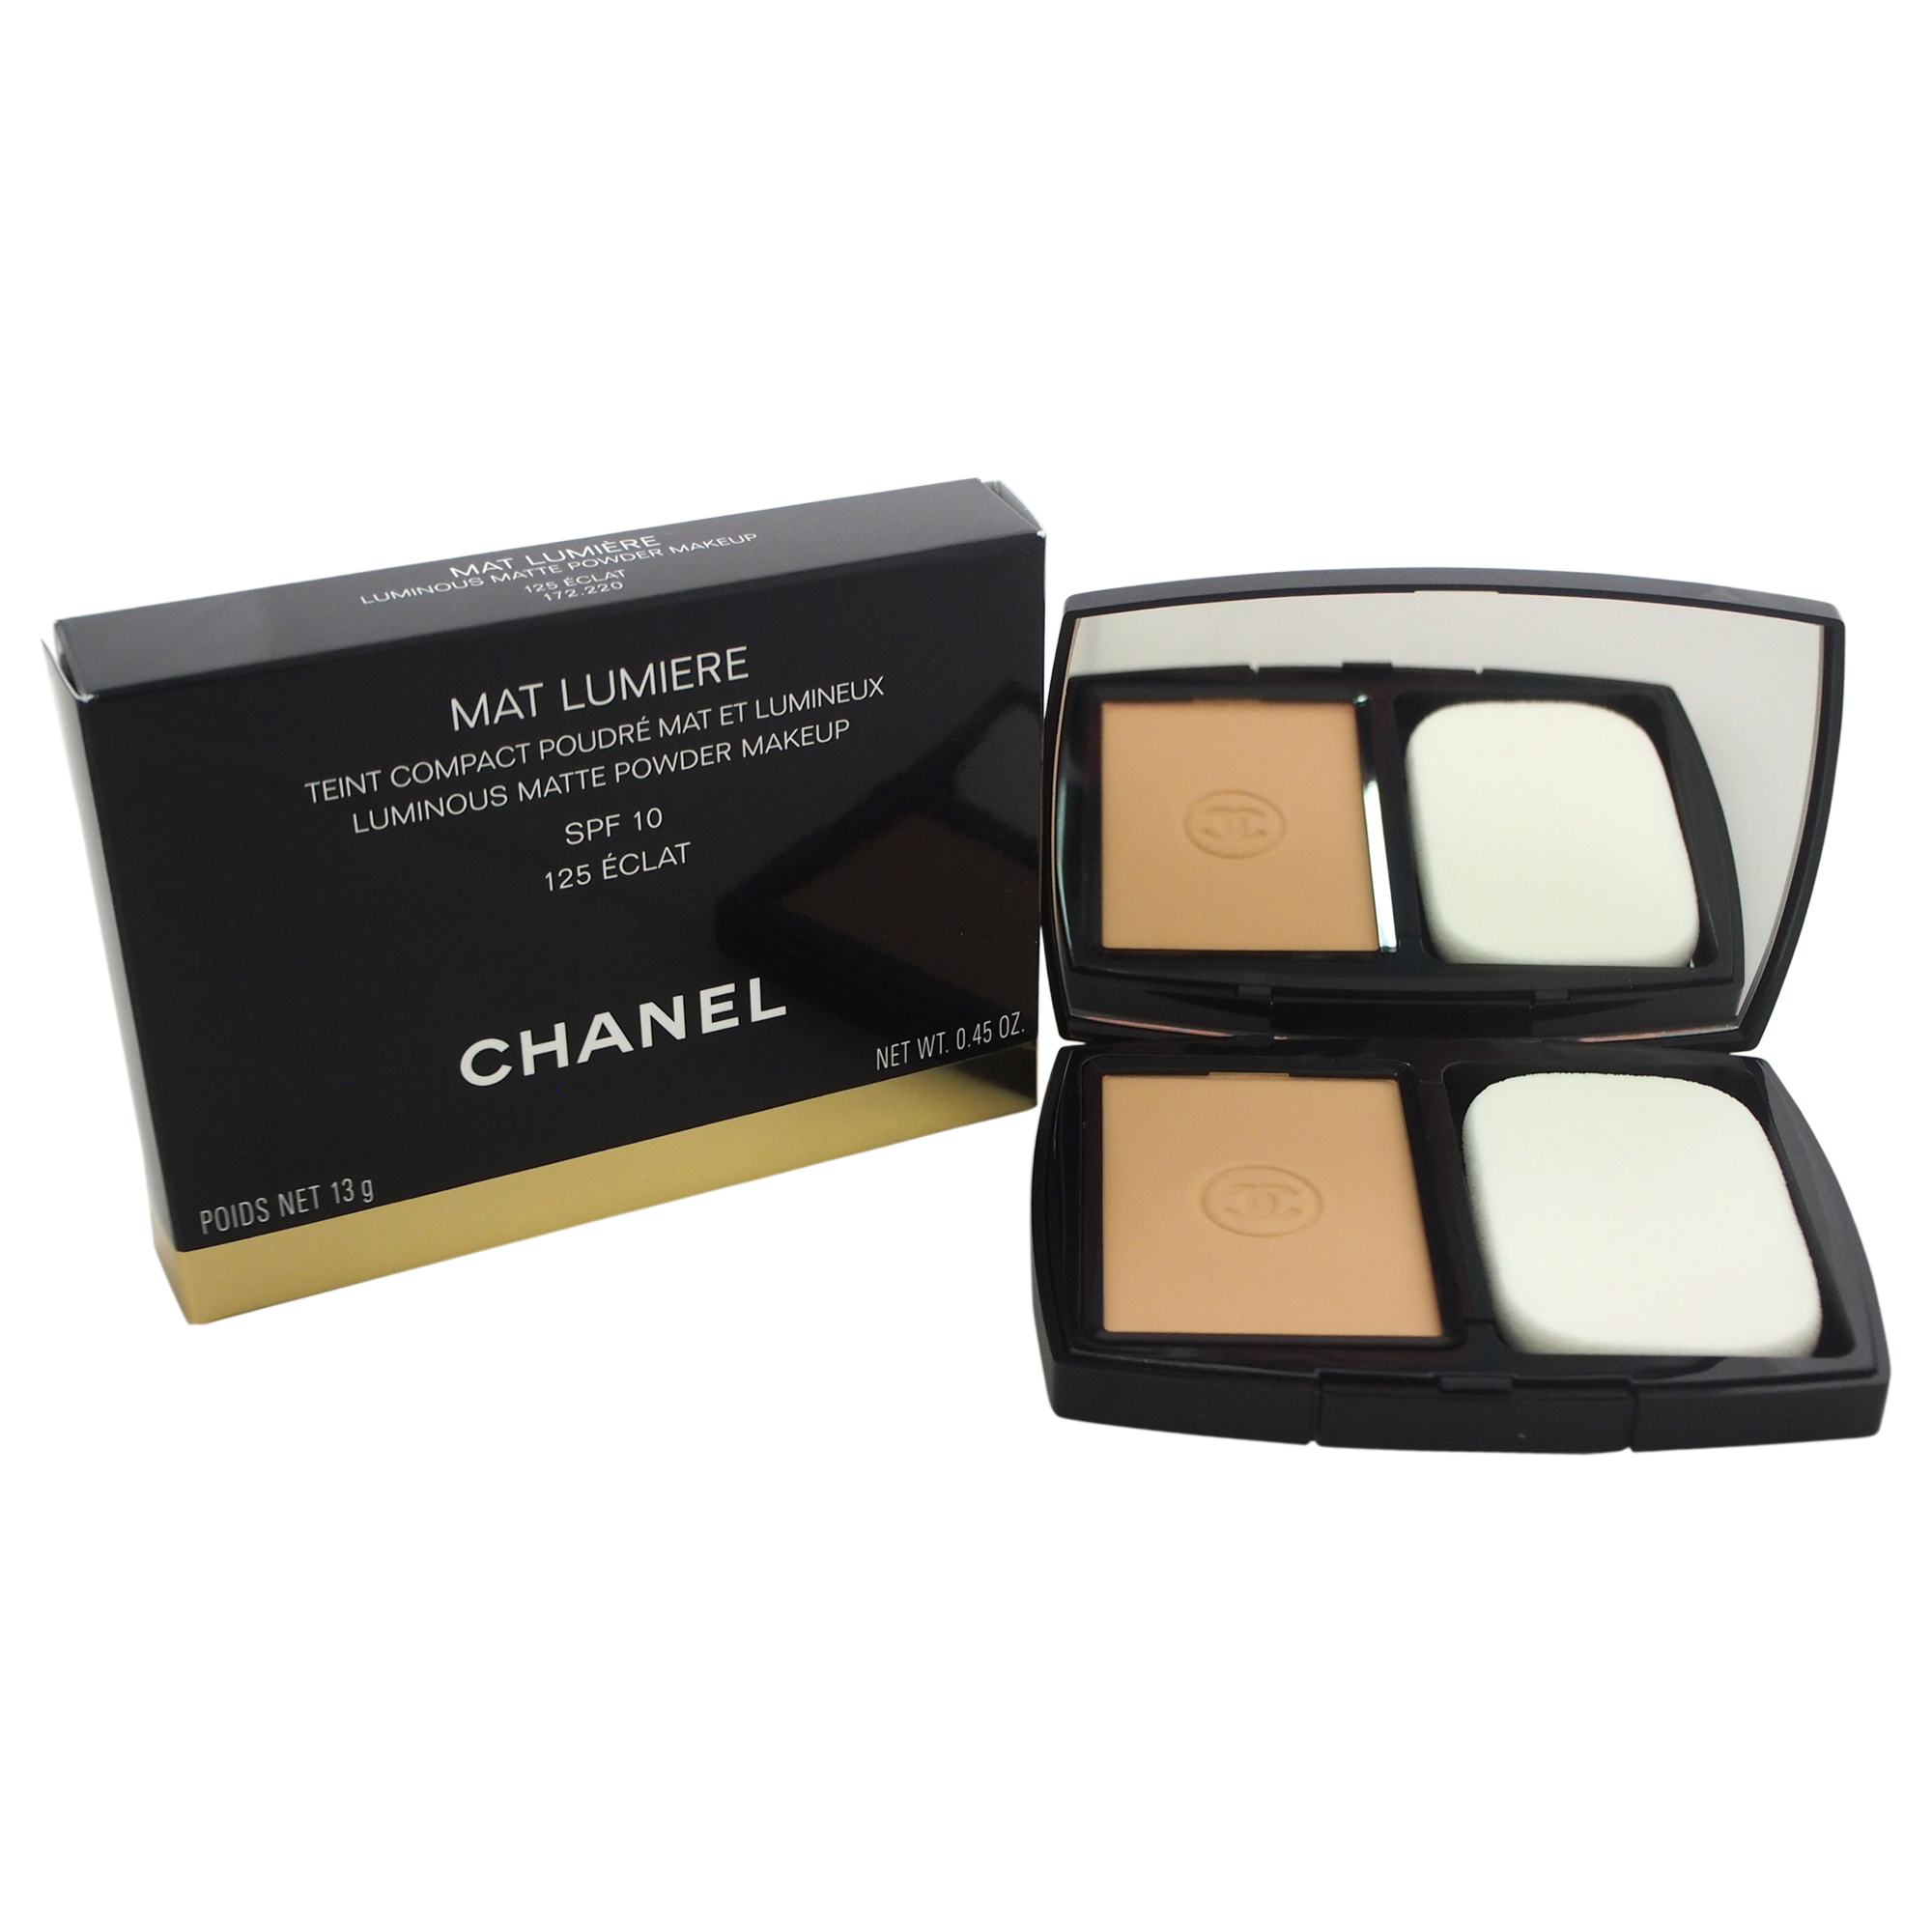 Chanel Mat Lumiere Luminous Matte Powder Makeup SPF 10